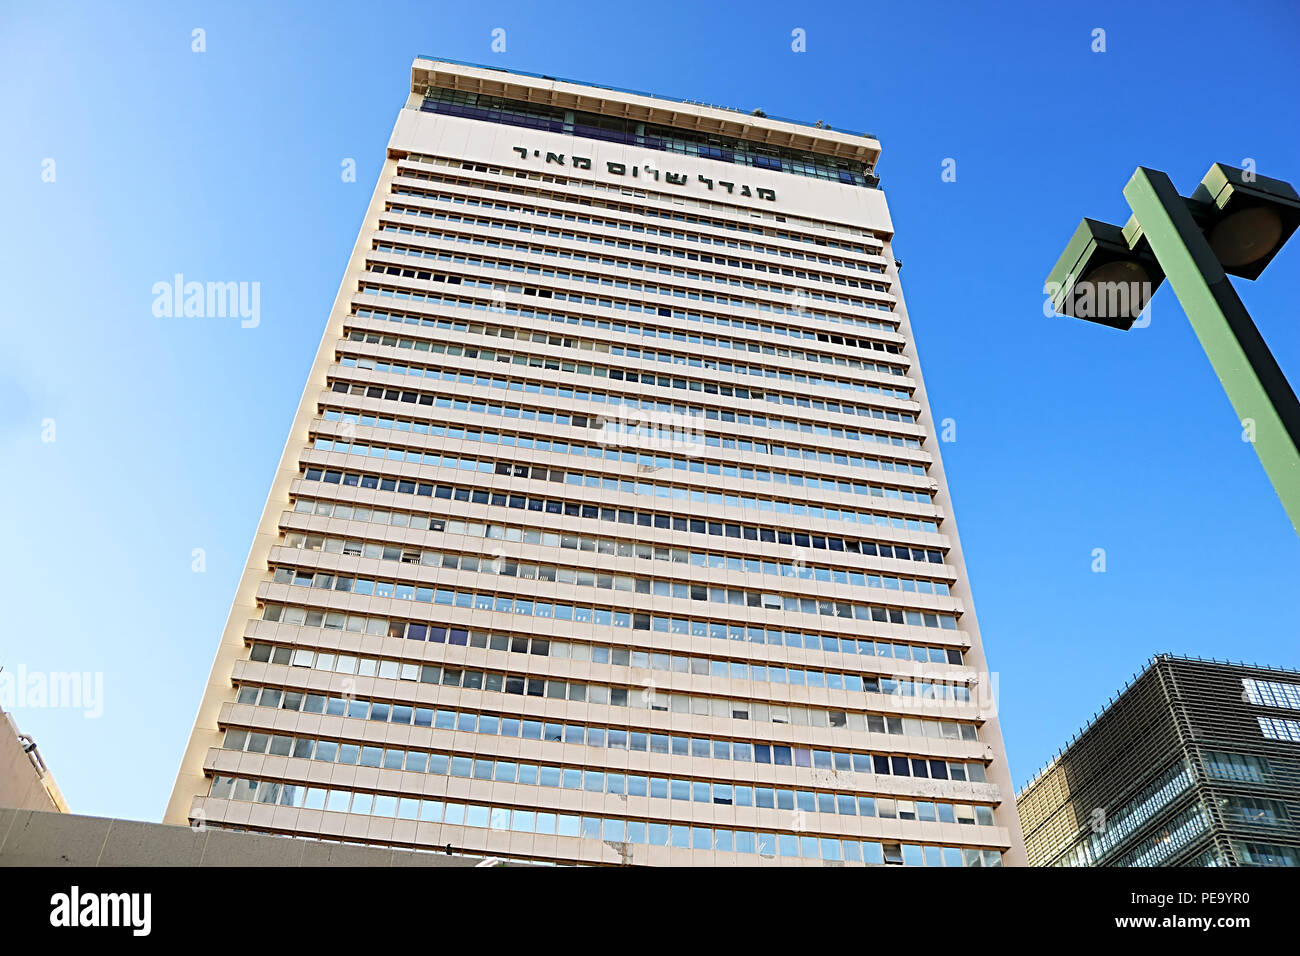 TEL AVIV, ISRAEL - SEPTEMBER 17, 2017: The front of the Shalom Meir Tower (Kolbo Shalom). Shalom Meir Tower was the first skyscraper in the city - Stock Image